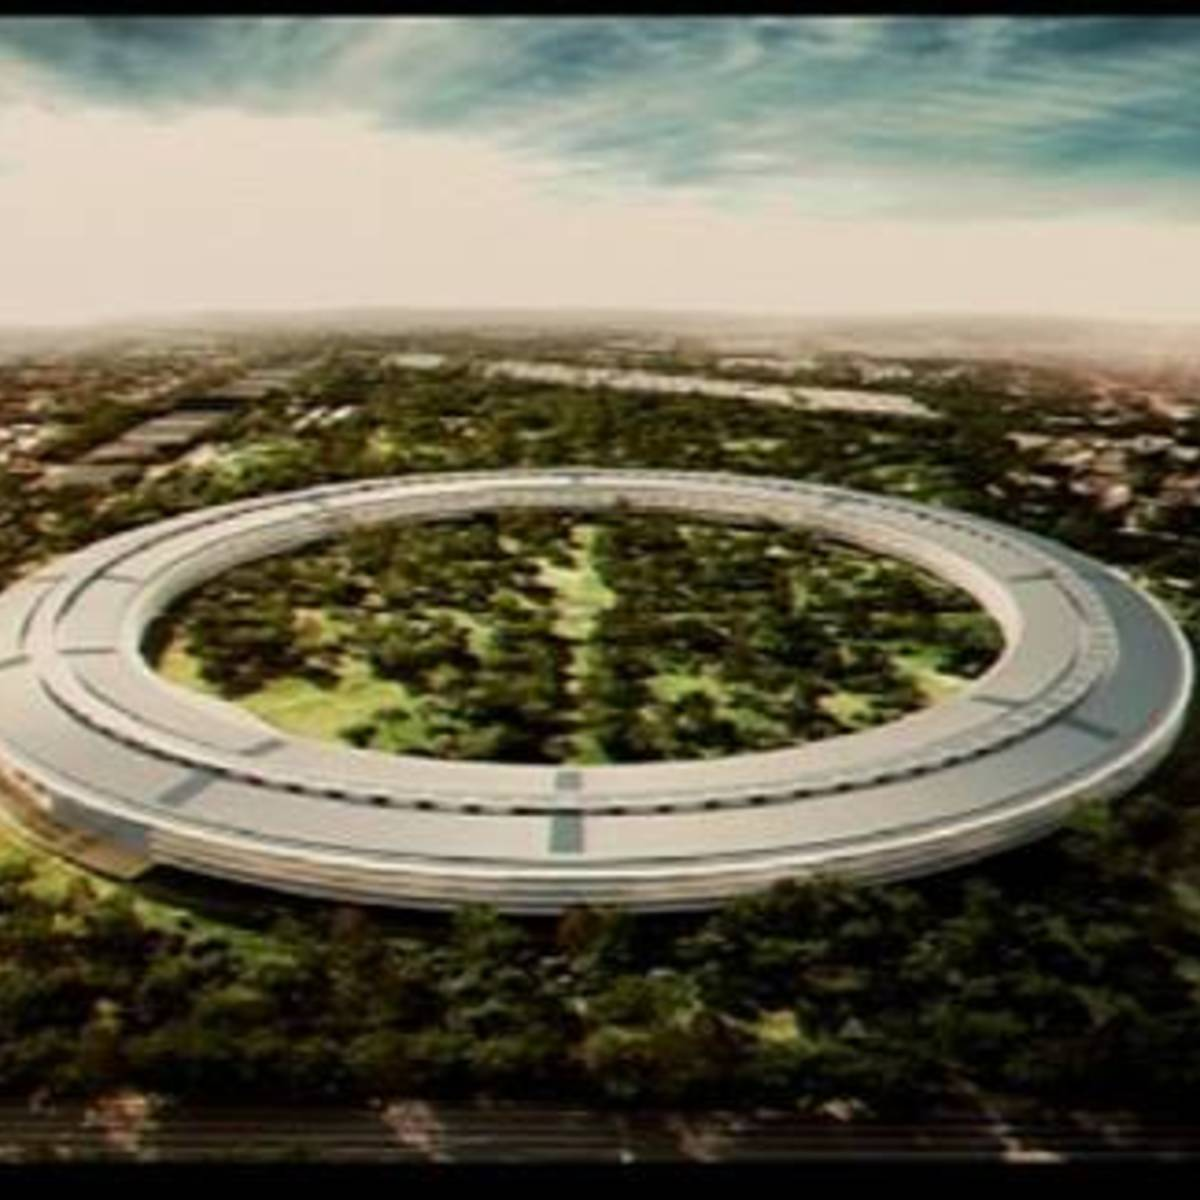 New Apple Campus wants to be green   Livegreenblog